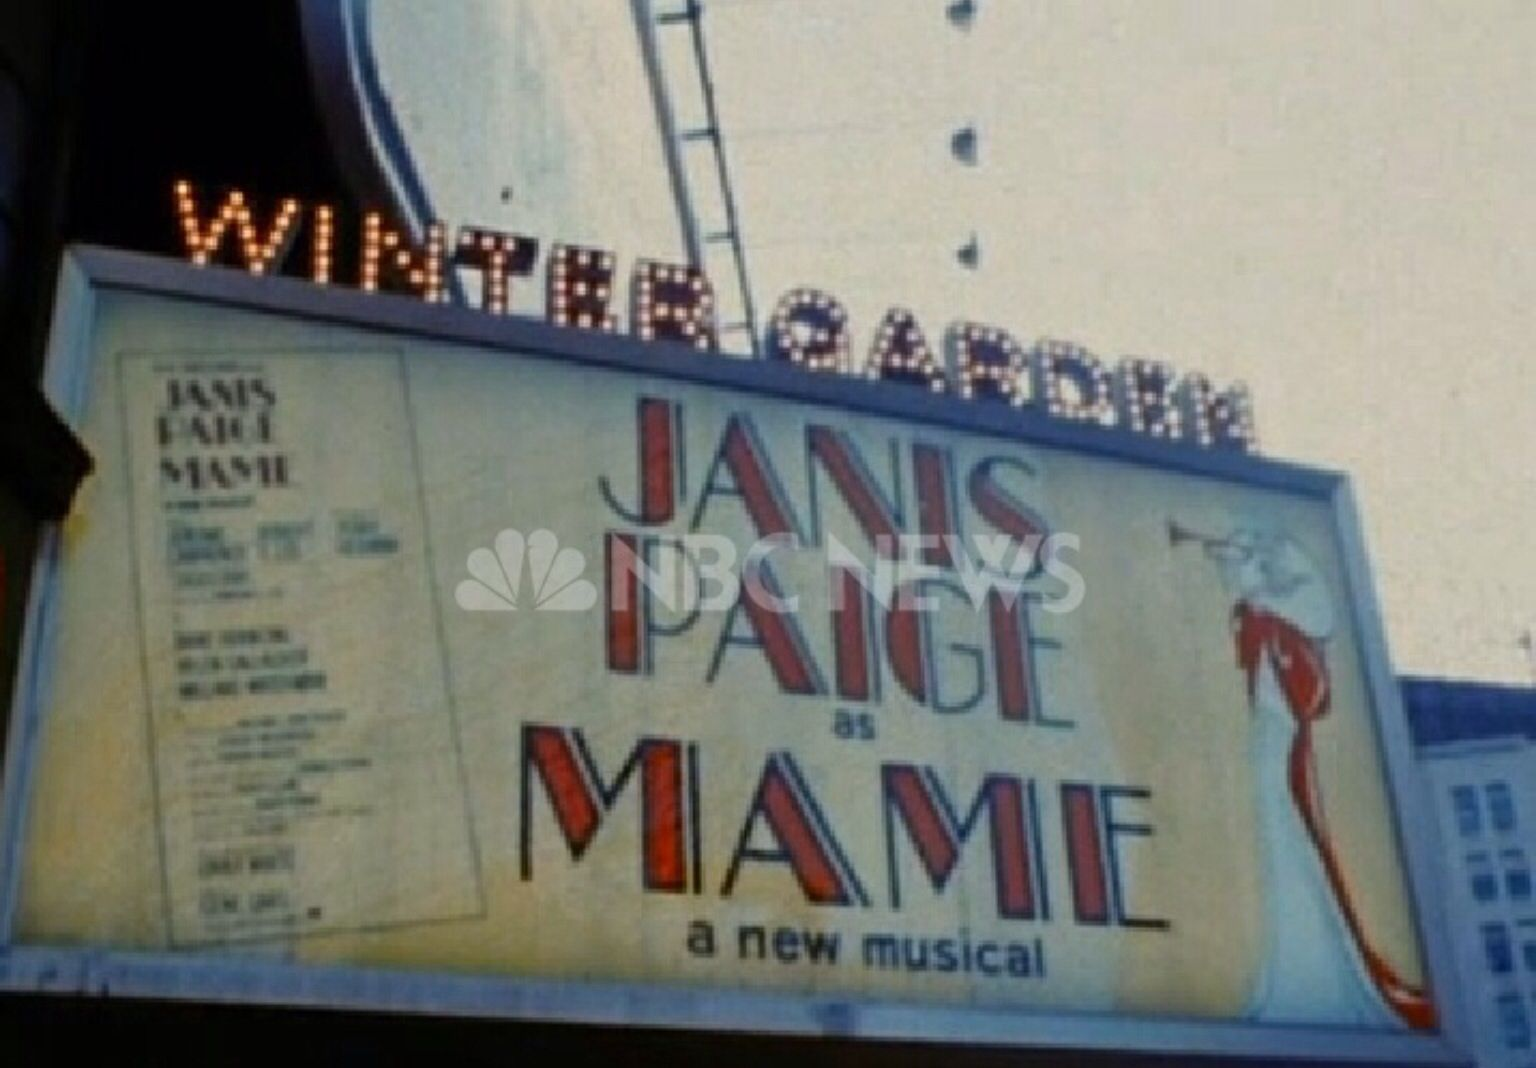 broadway marquee mame winter garden theatre janis paige theatre